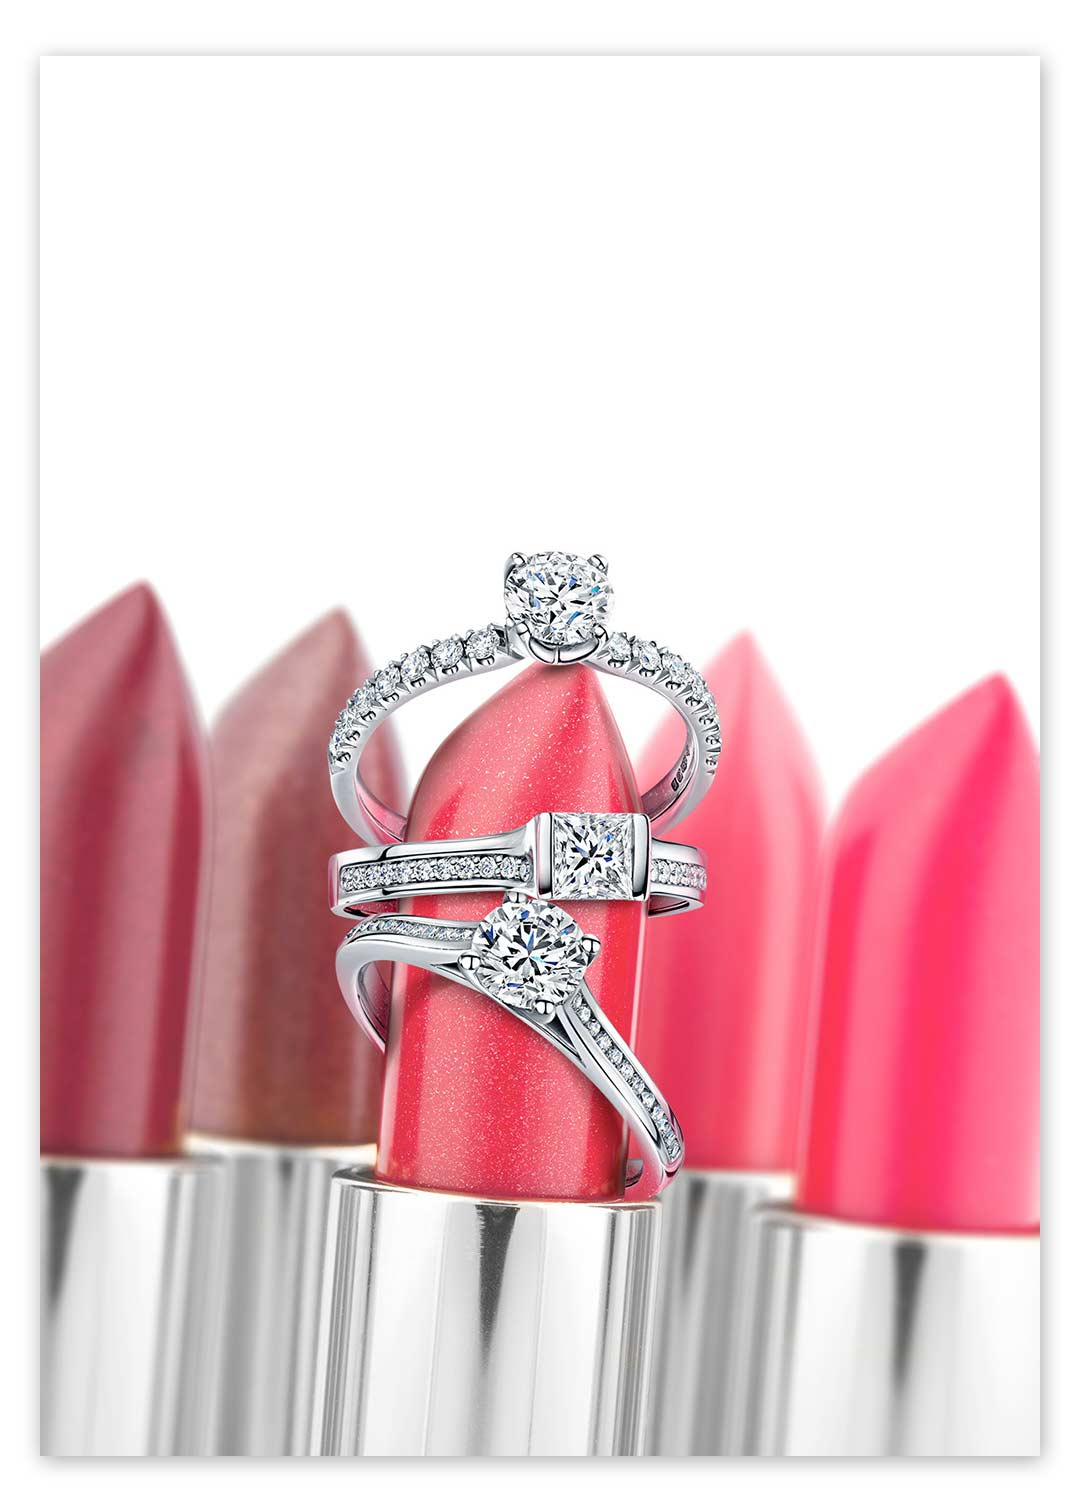 Retouch jewellery and photoshop the rings to lipstick